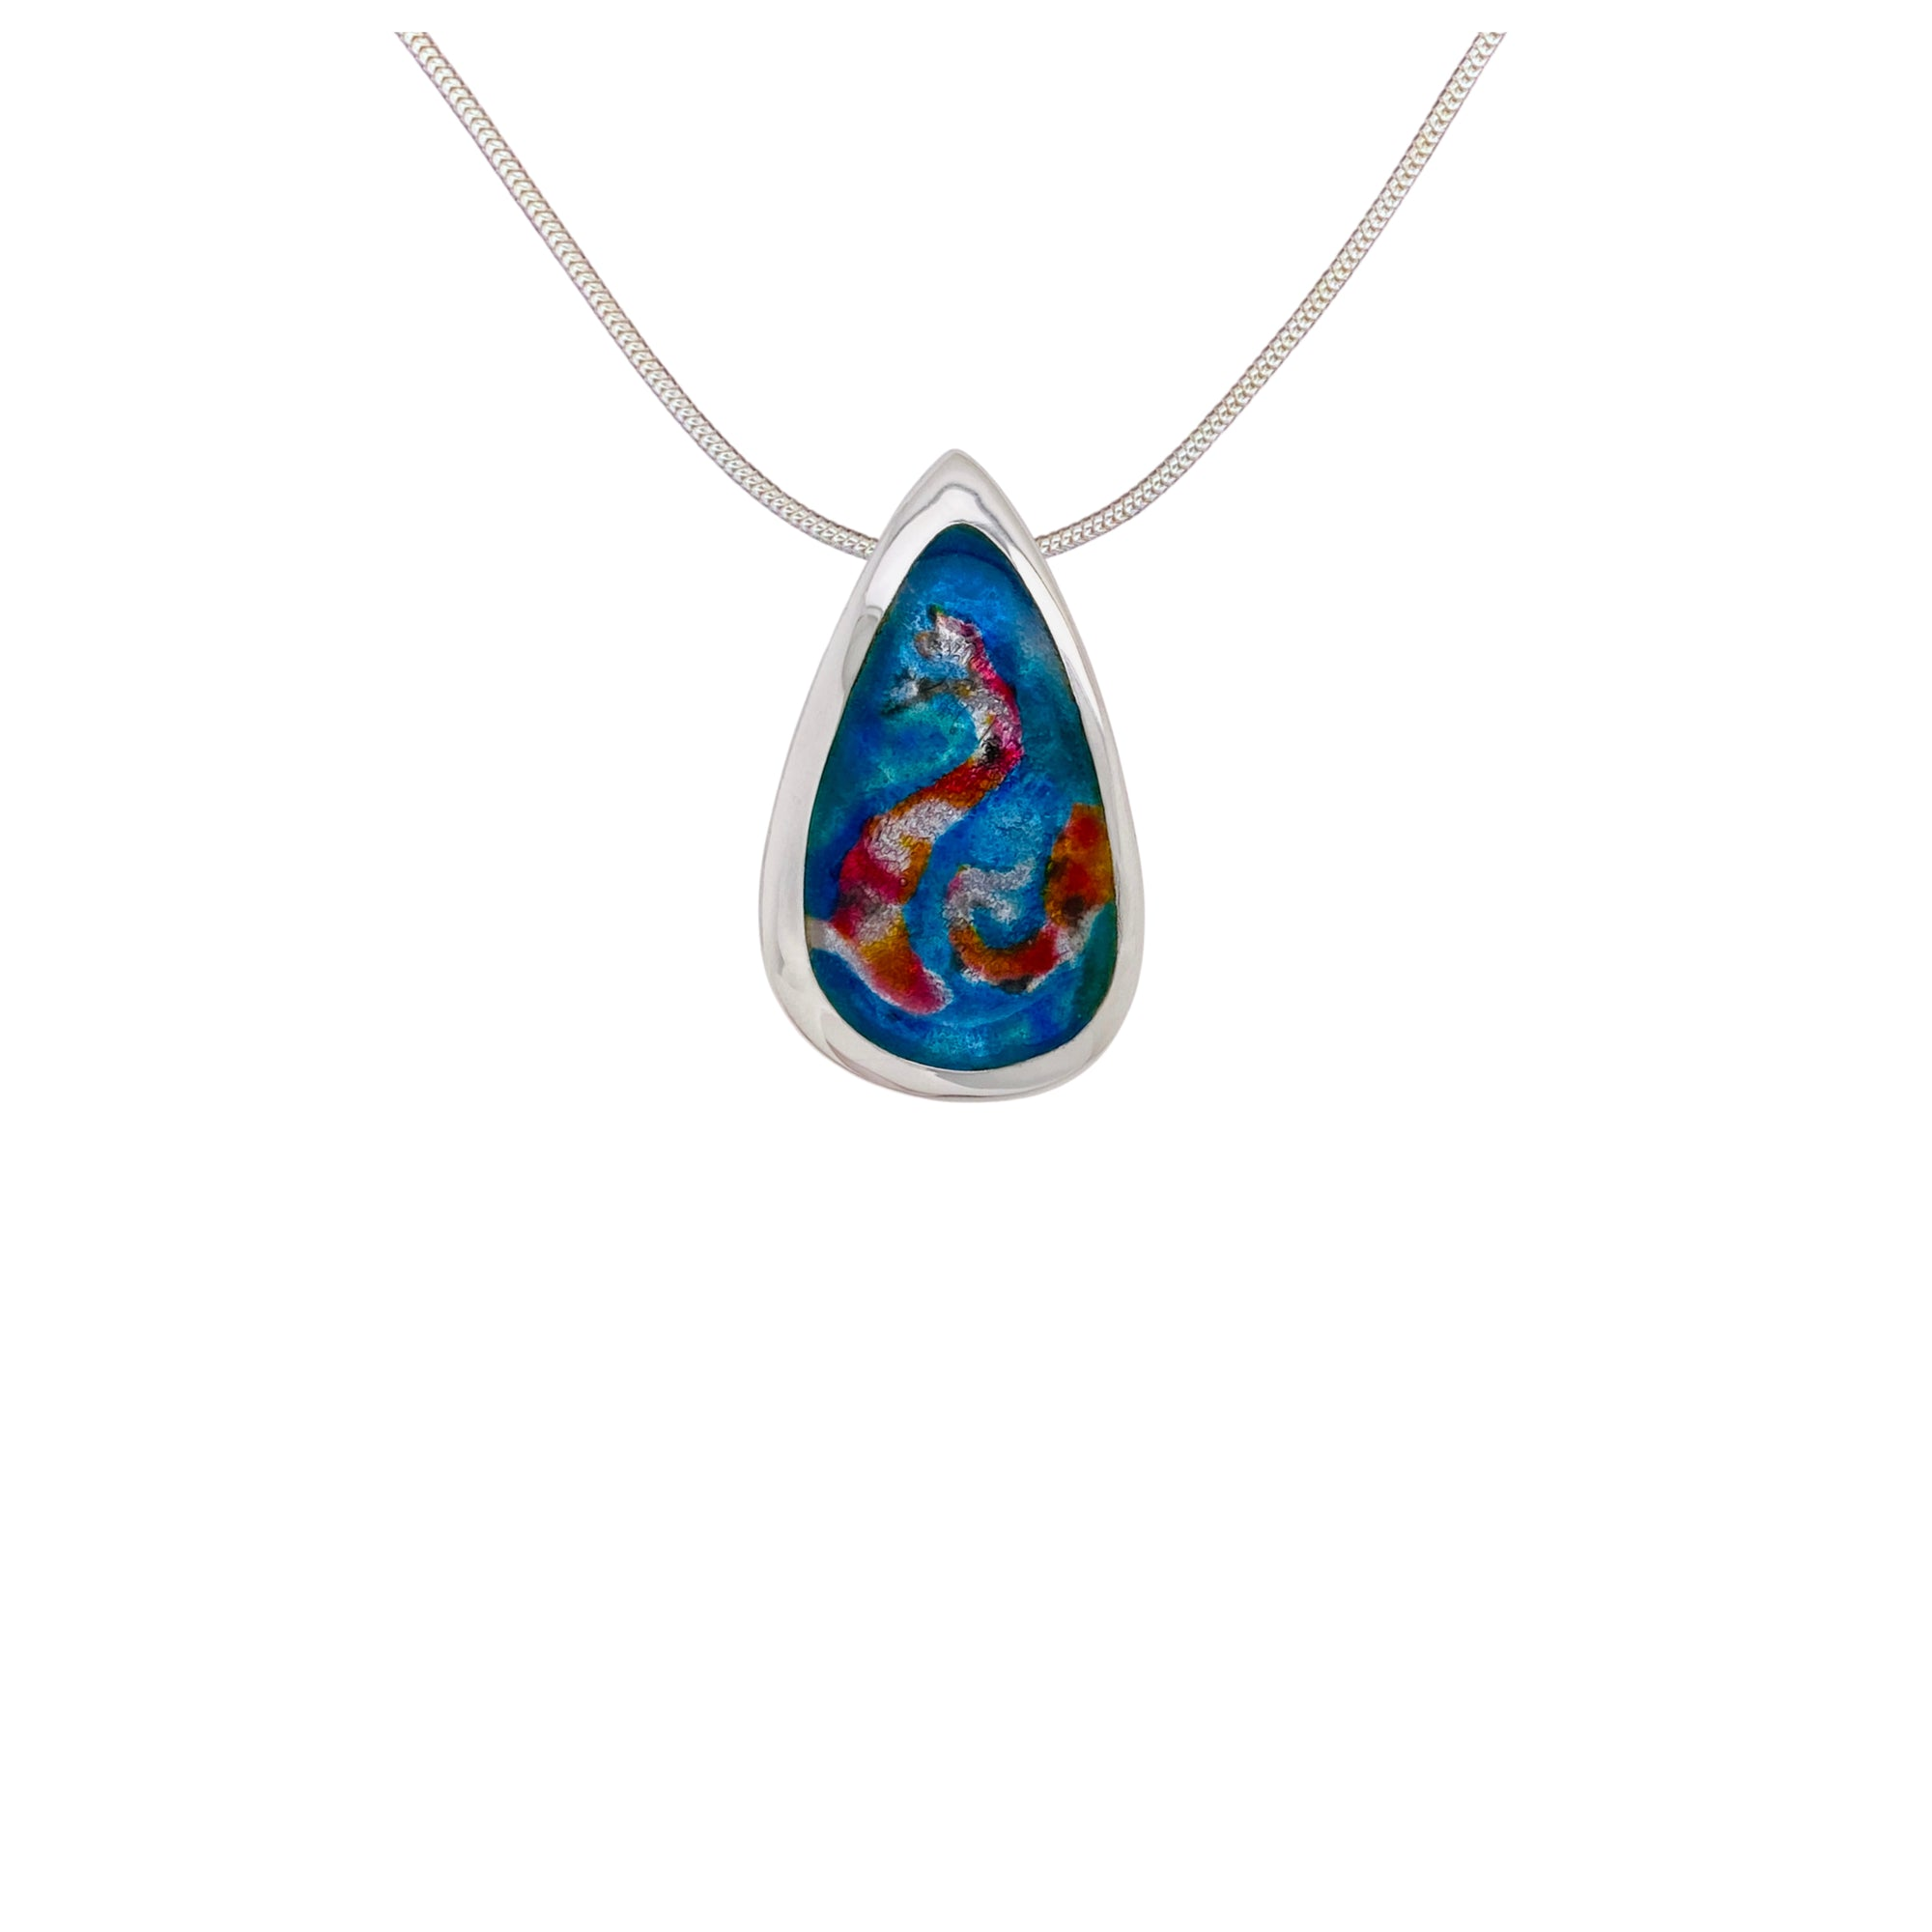 Camille Patton Koi Pond Champleve Jewelry Necklace S01